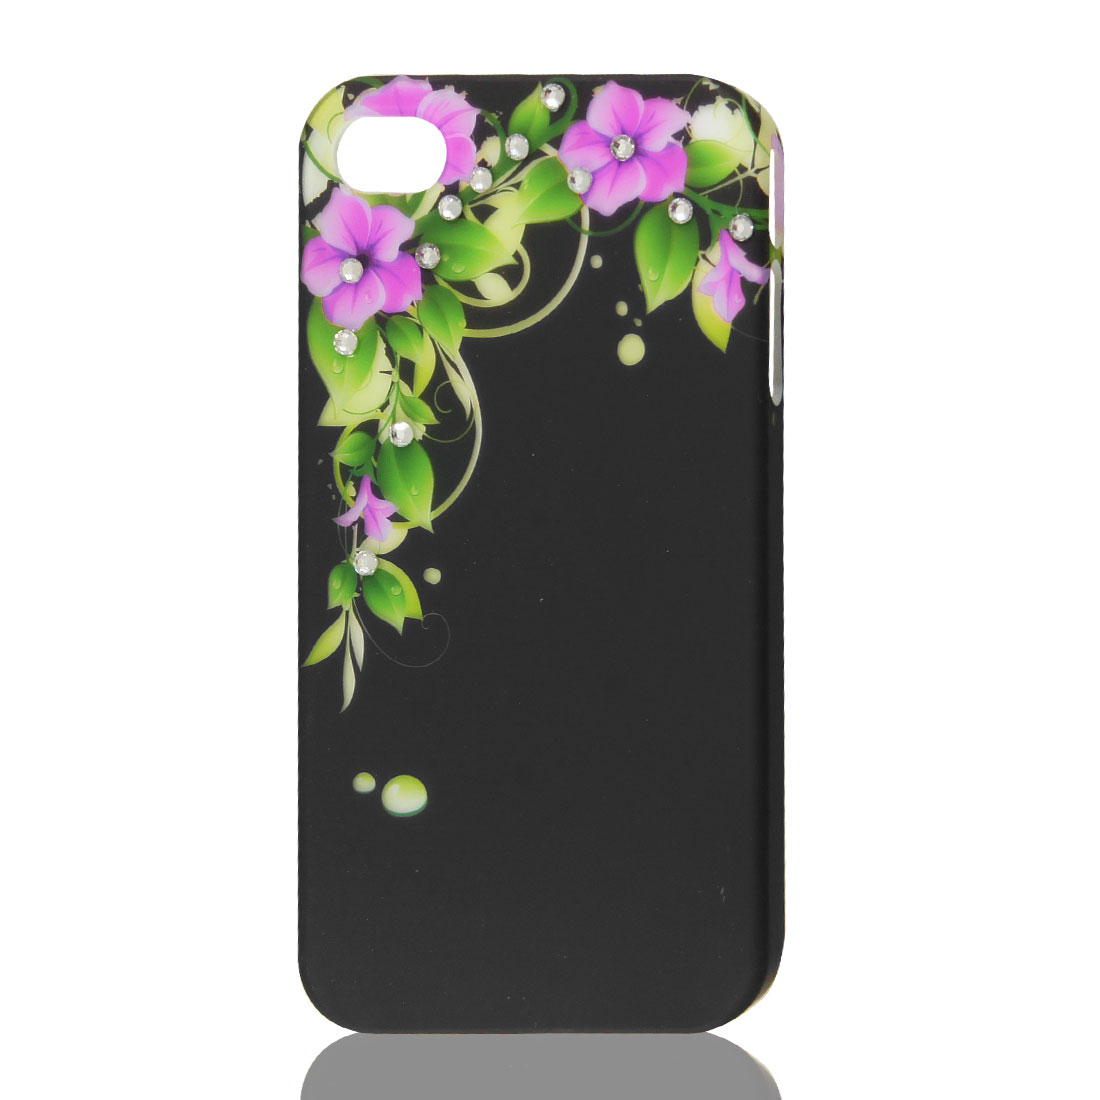 Black Glitter Rhinestone Flower Hard Back Case Cover Protector for iPhone 4G